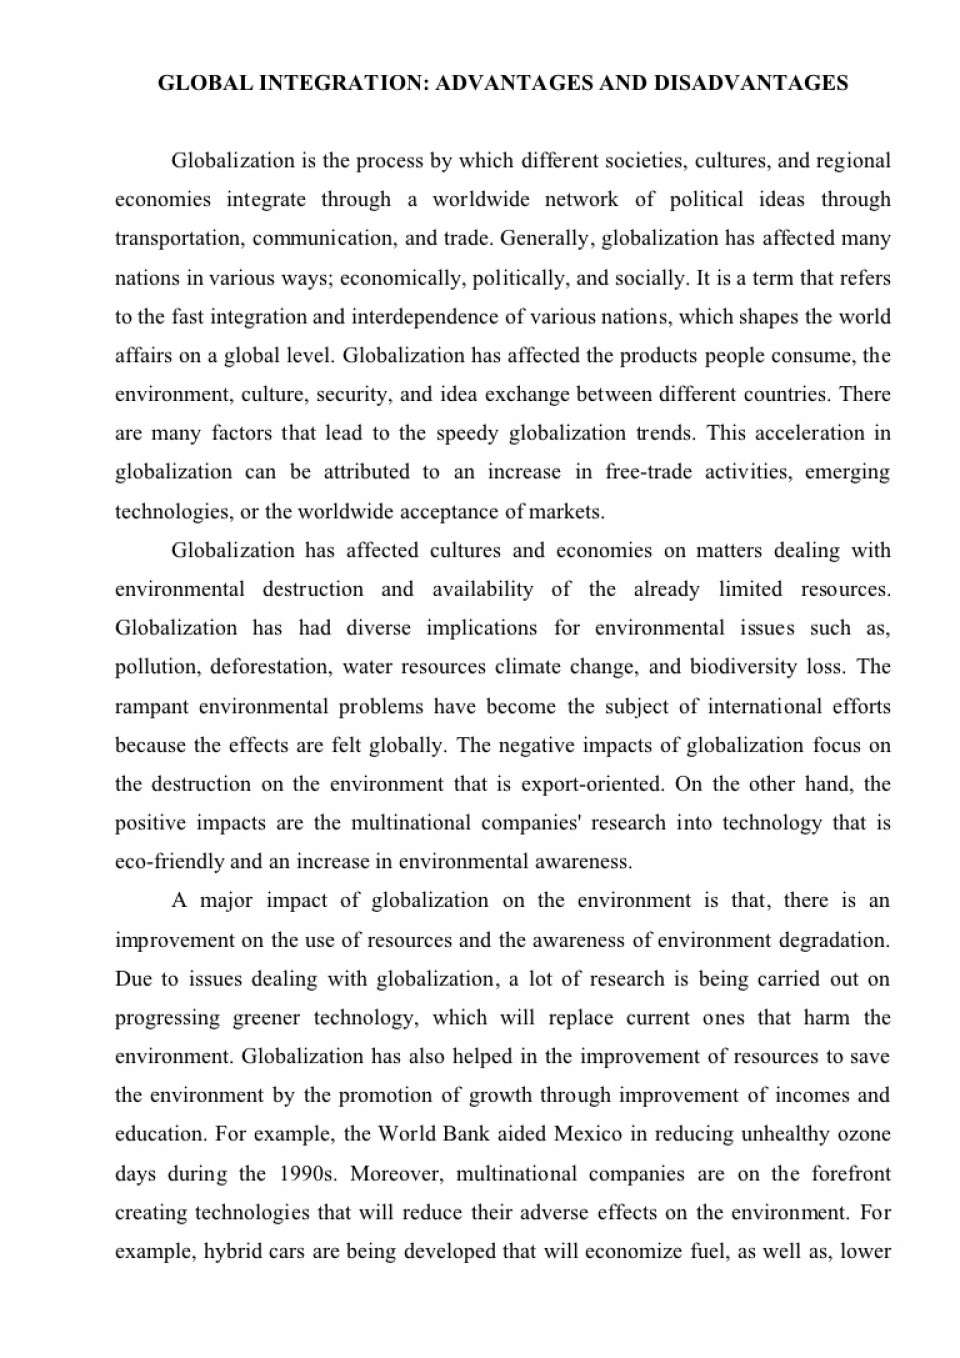 021 Essayglobalization Phpapp02 Thumbnail Essay Example Advantage And Disadvantage Of Shocking Science Advantages Disadvantages Pdf In Hindi English 960